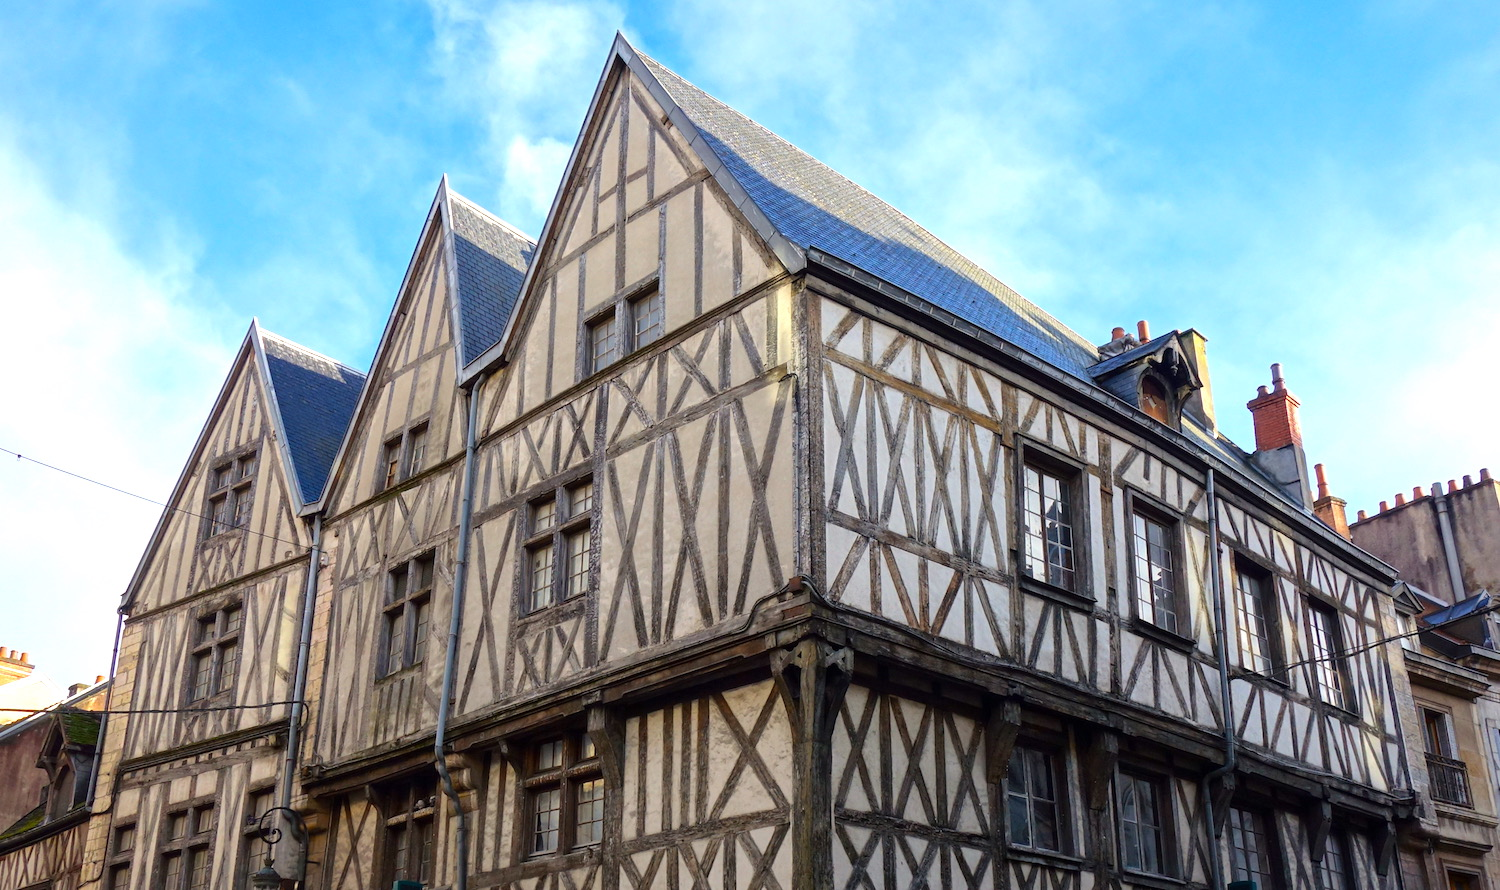 an introduction to dijon 39 s medieval architecture in 10